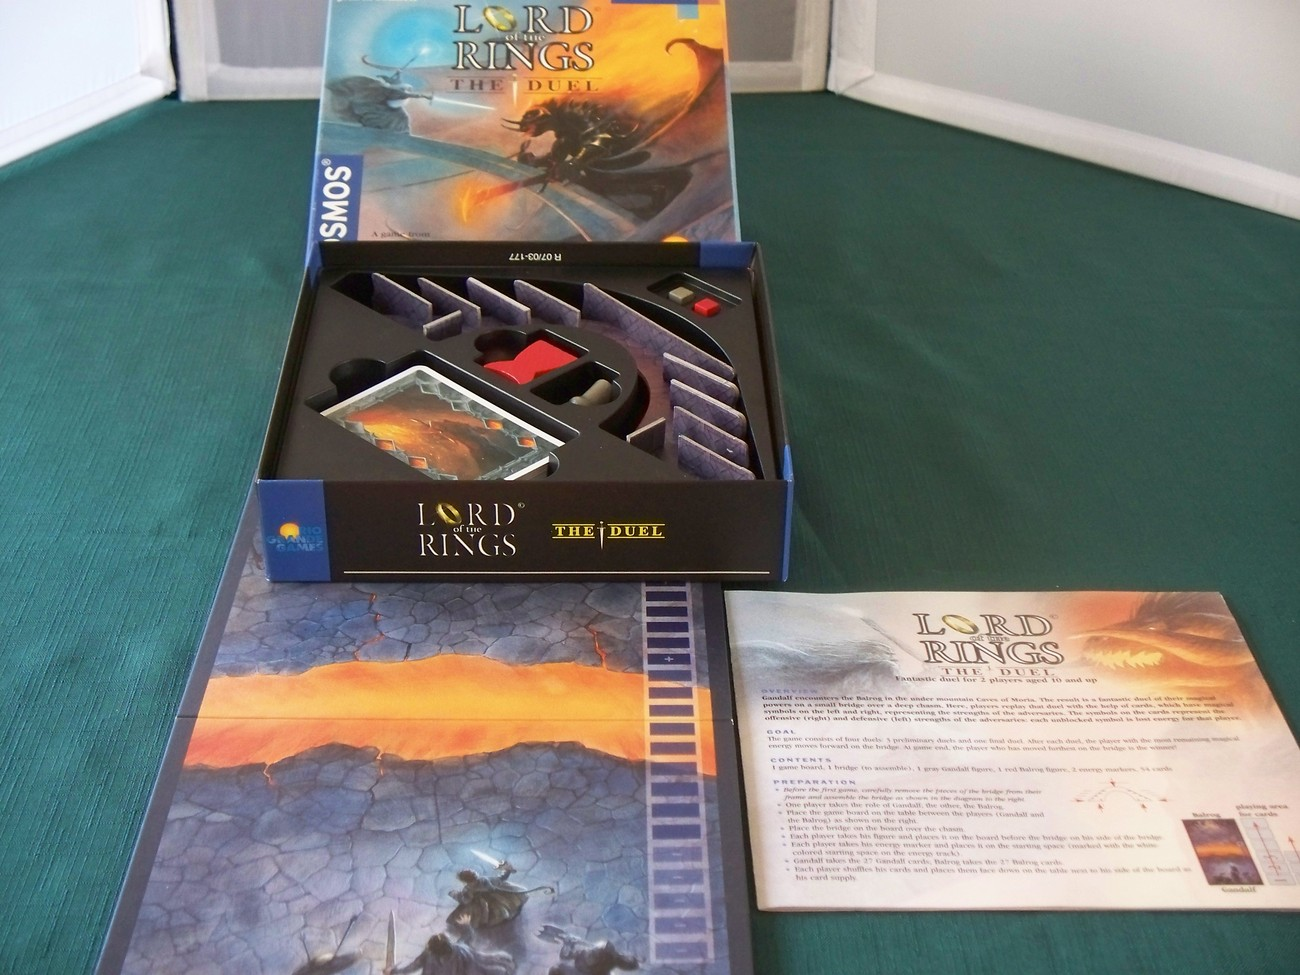 Lord Of The Rings The Duel Rio Grande Games Complete VGC